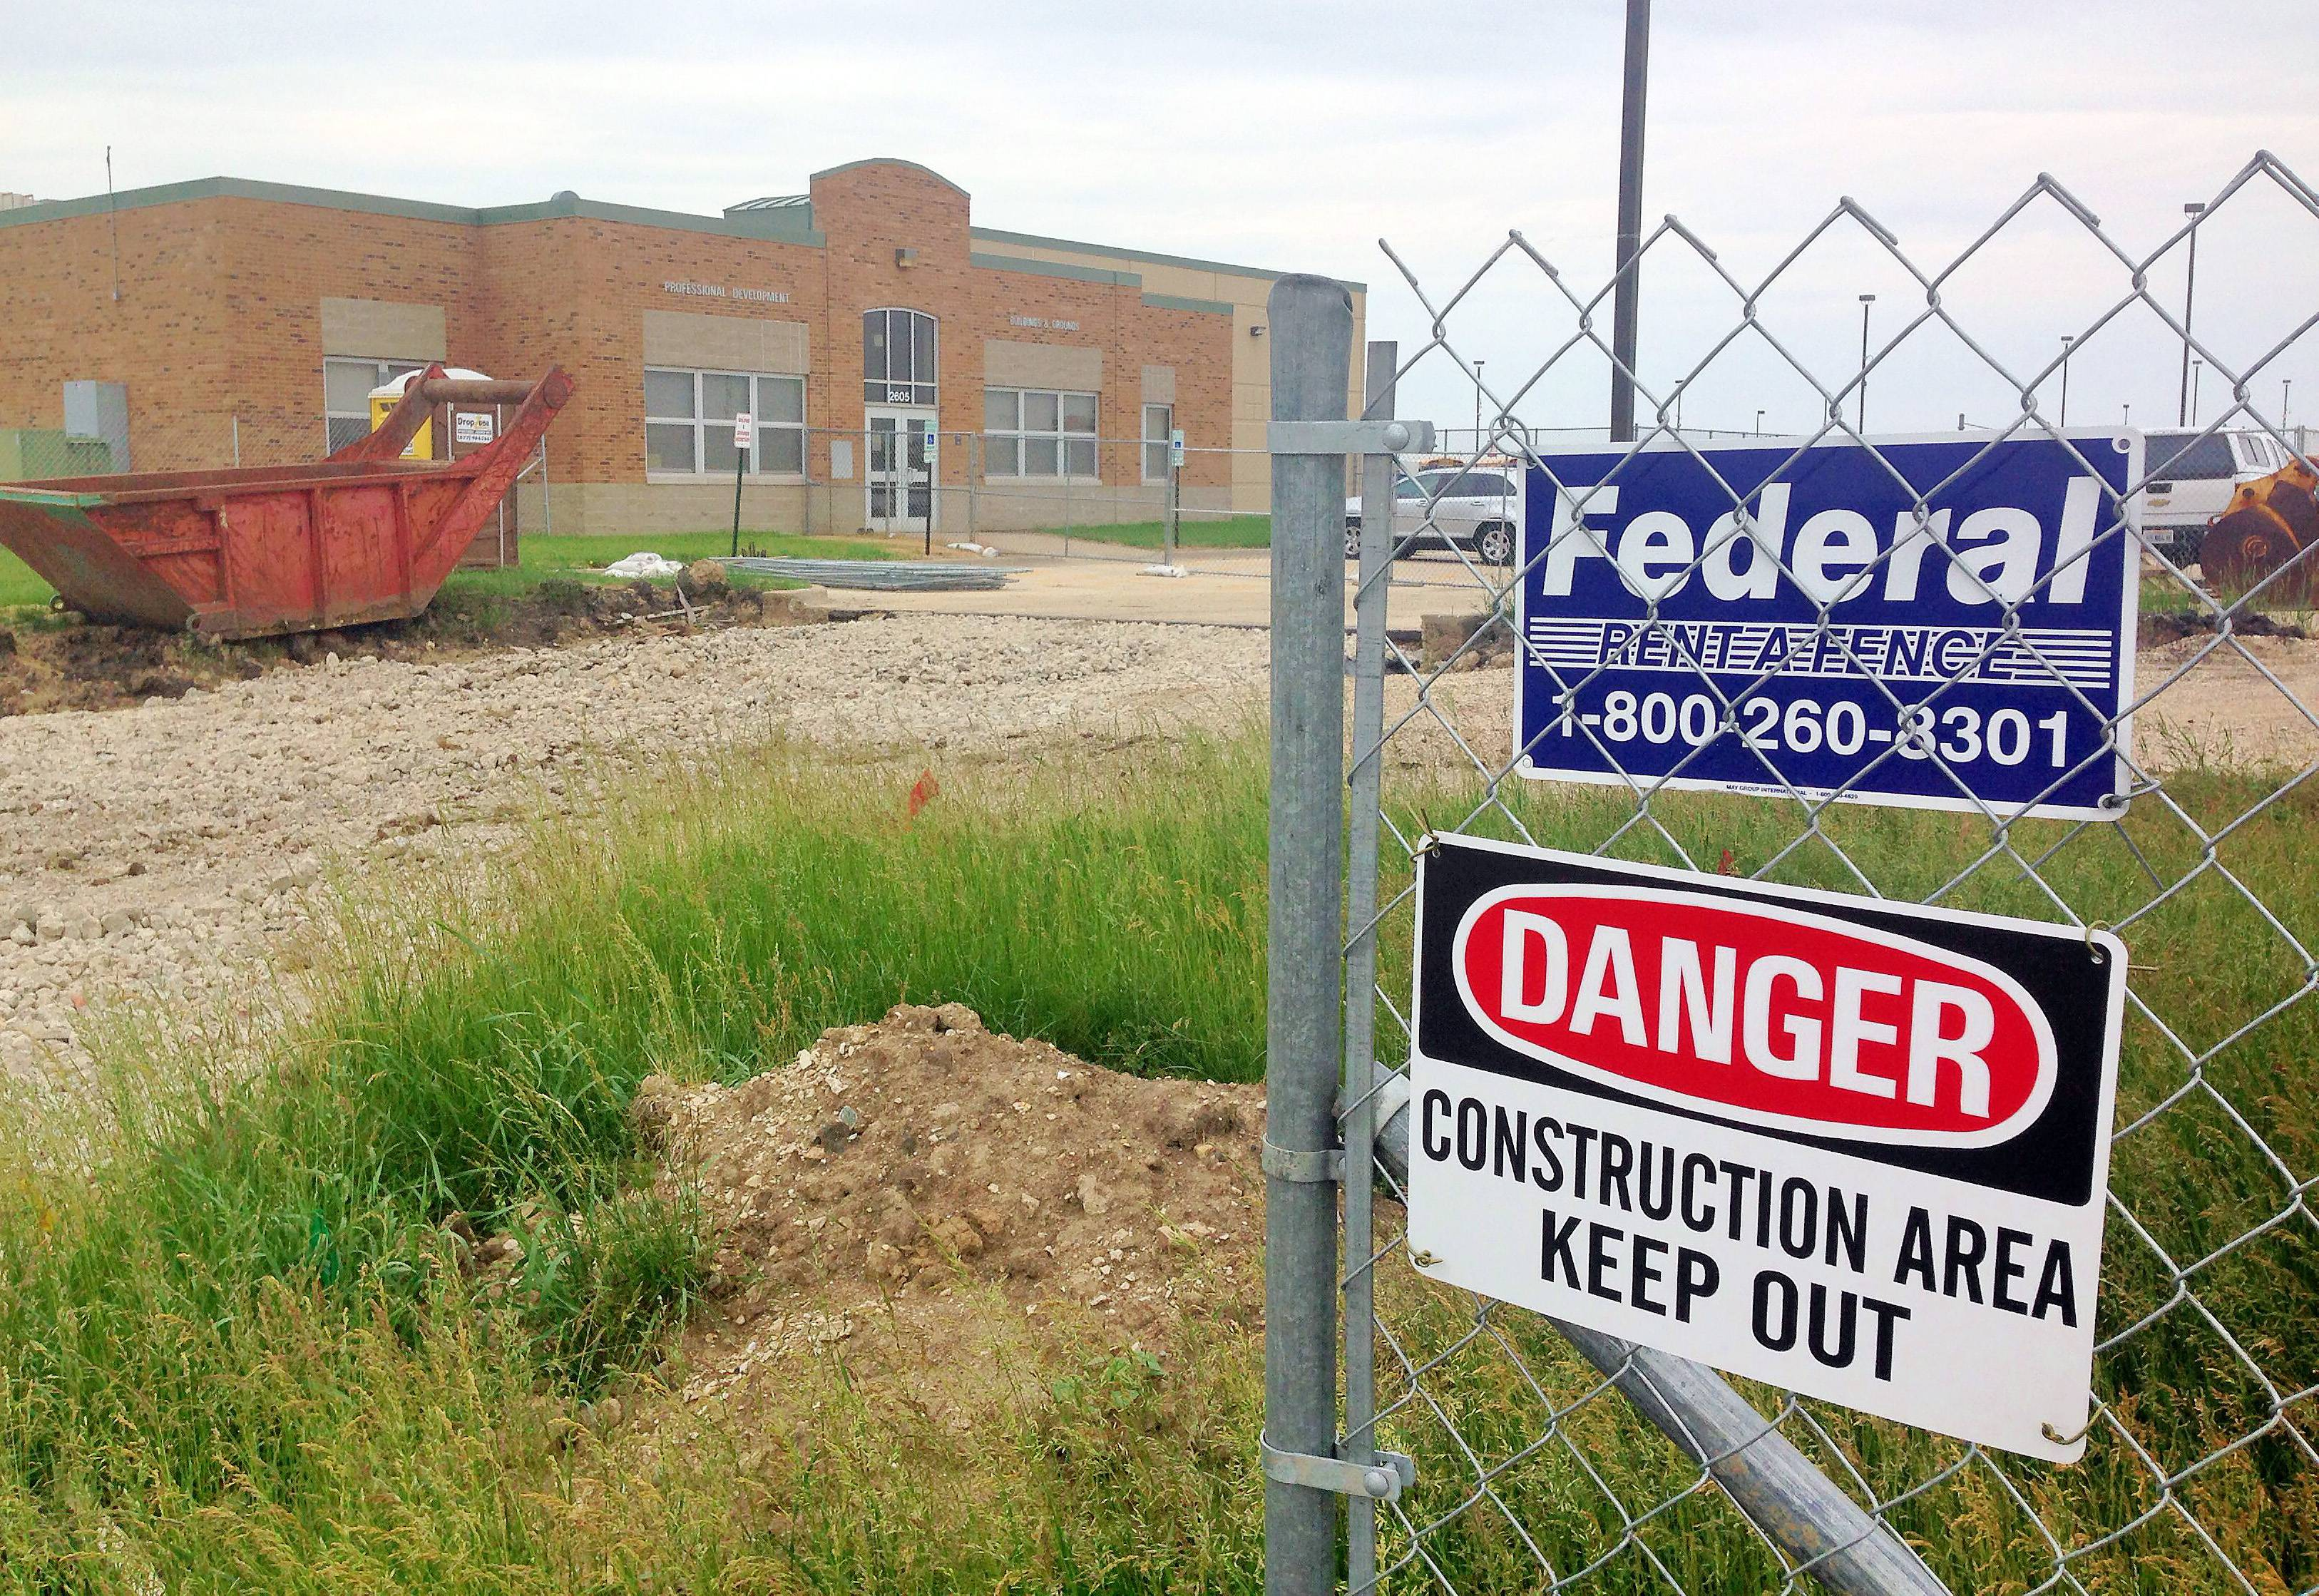 Construction is ongoing at the new Community Unit District 300 administration building in Algonquin. The district hasn't decided how to pay for the $3.9 million project, but a pair of officials say an anticipated $35 million to $60 million from the state won't come through in time to cover the costs.